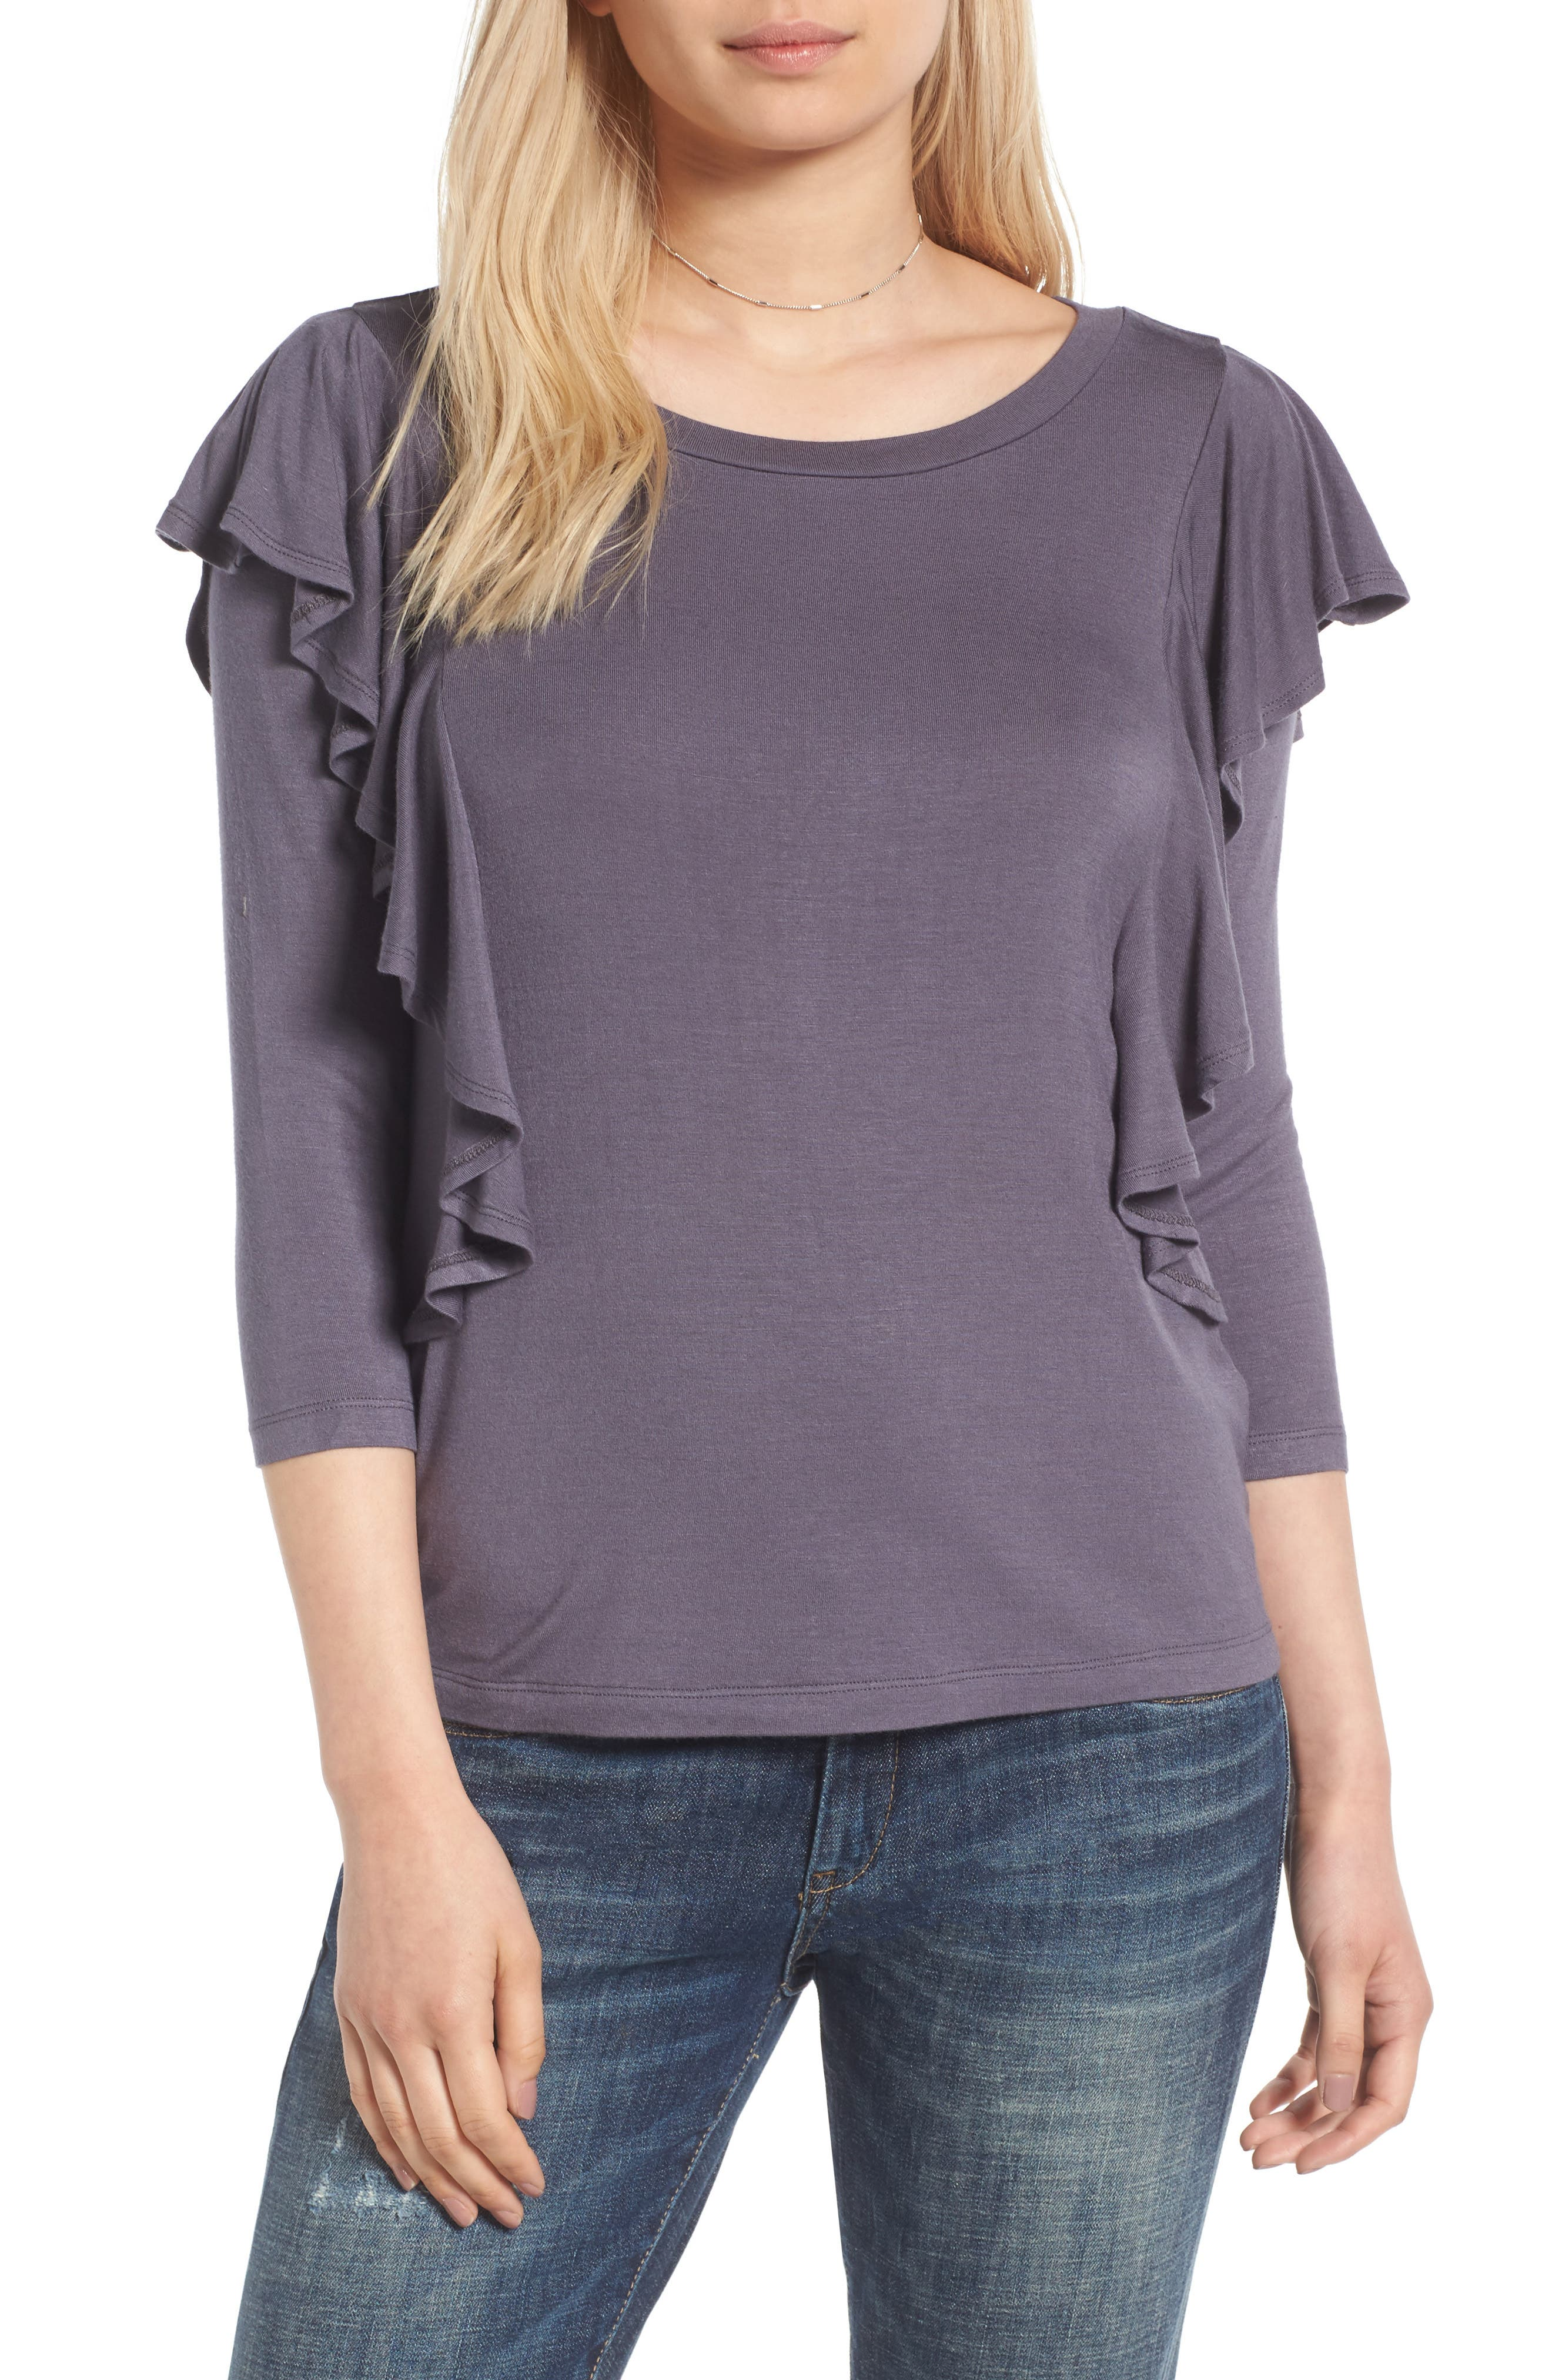 Madison & Berkeley Ruffle Knit Top